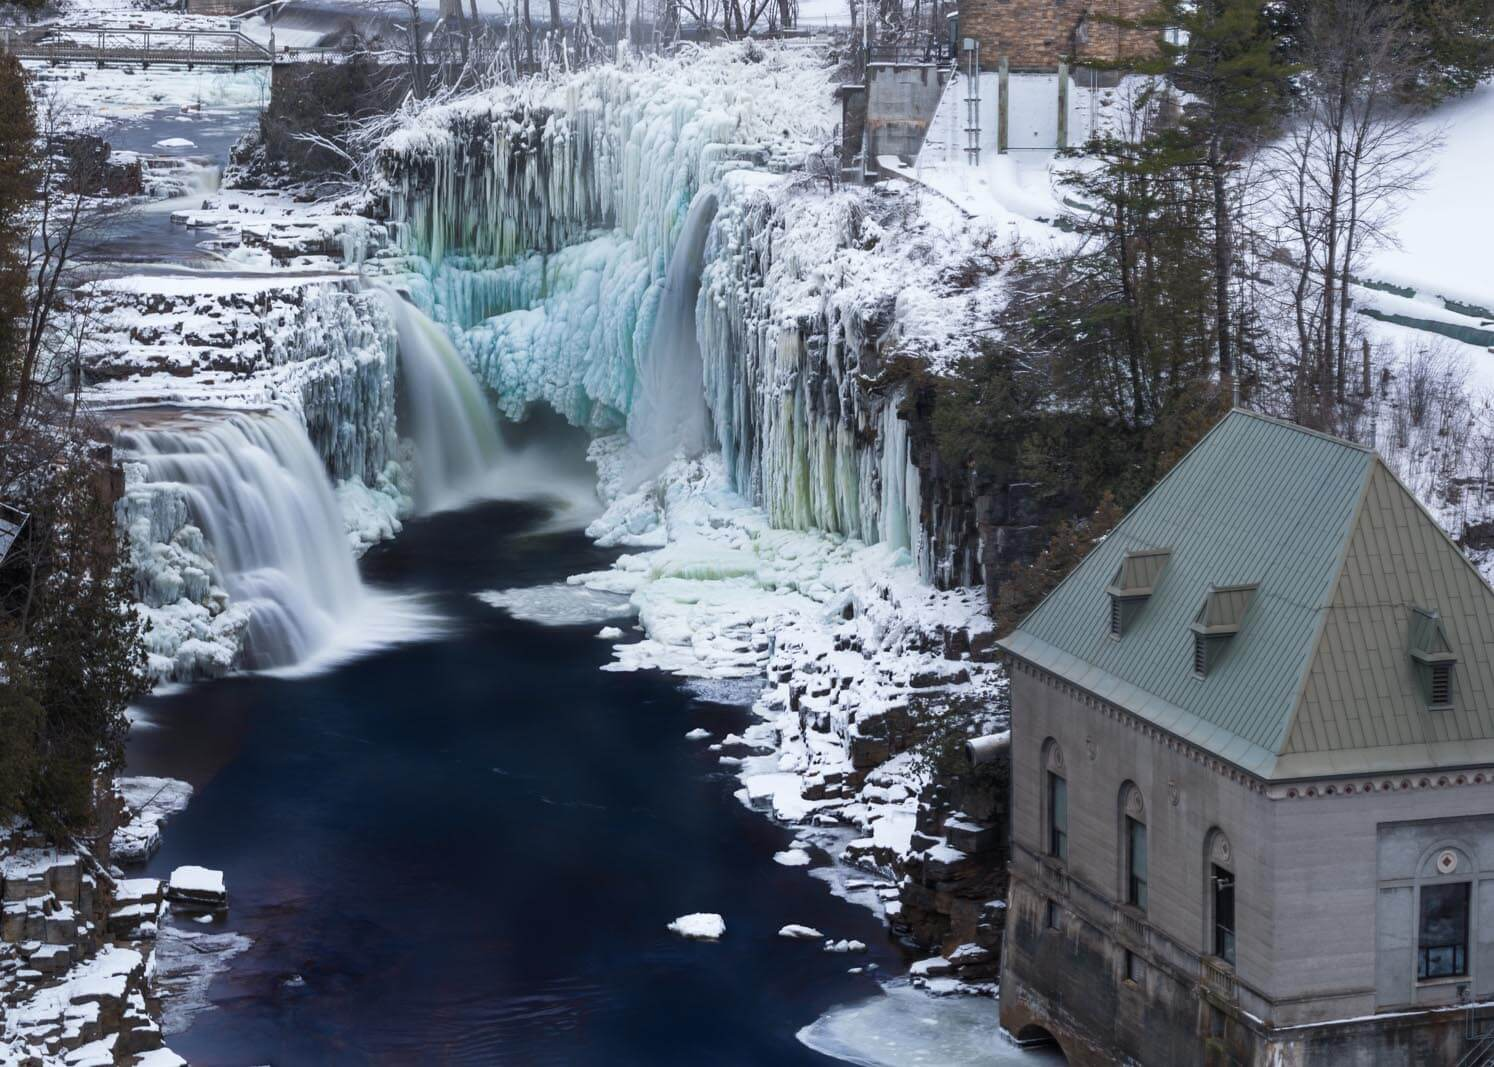 Ausable Chasm frozen over during winter in the Adirondacks New York